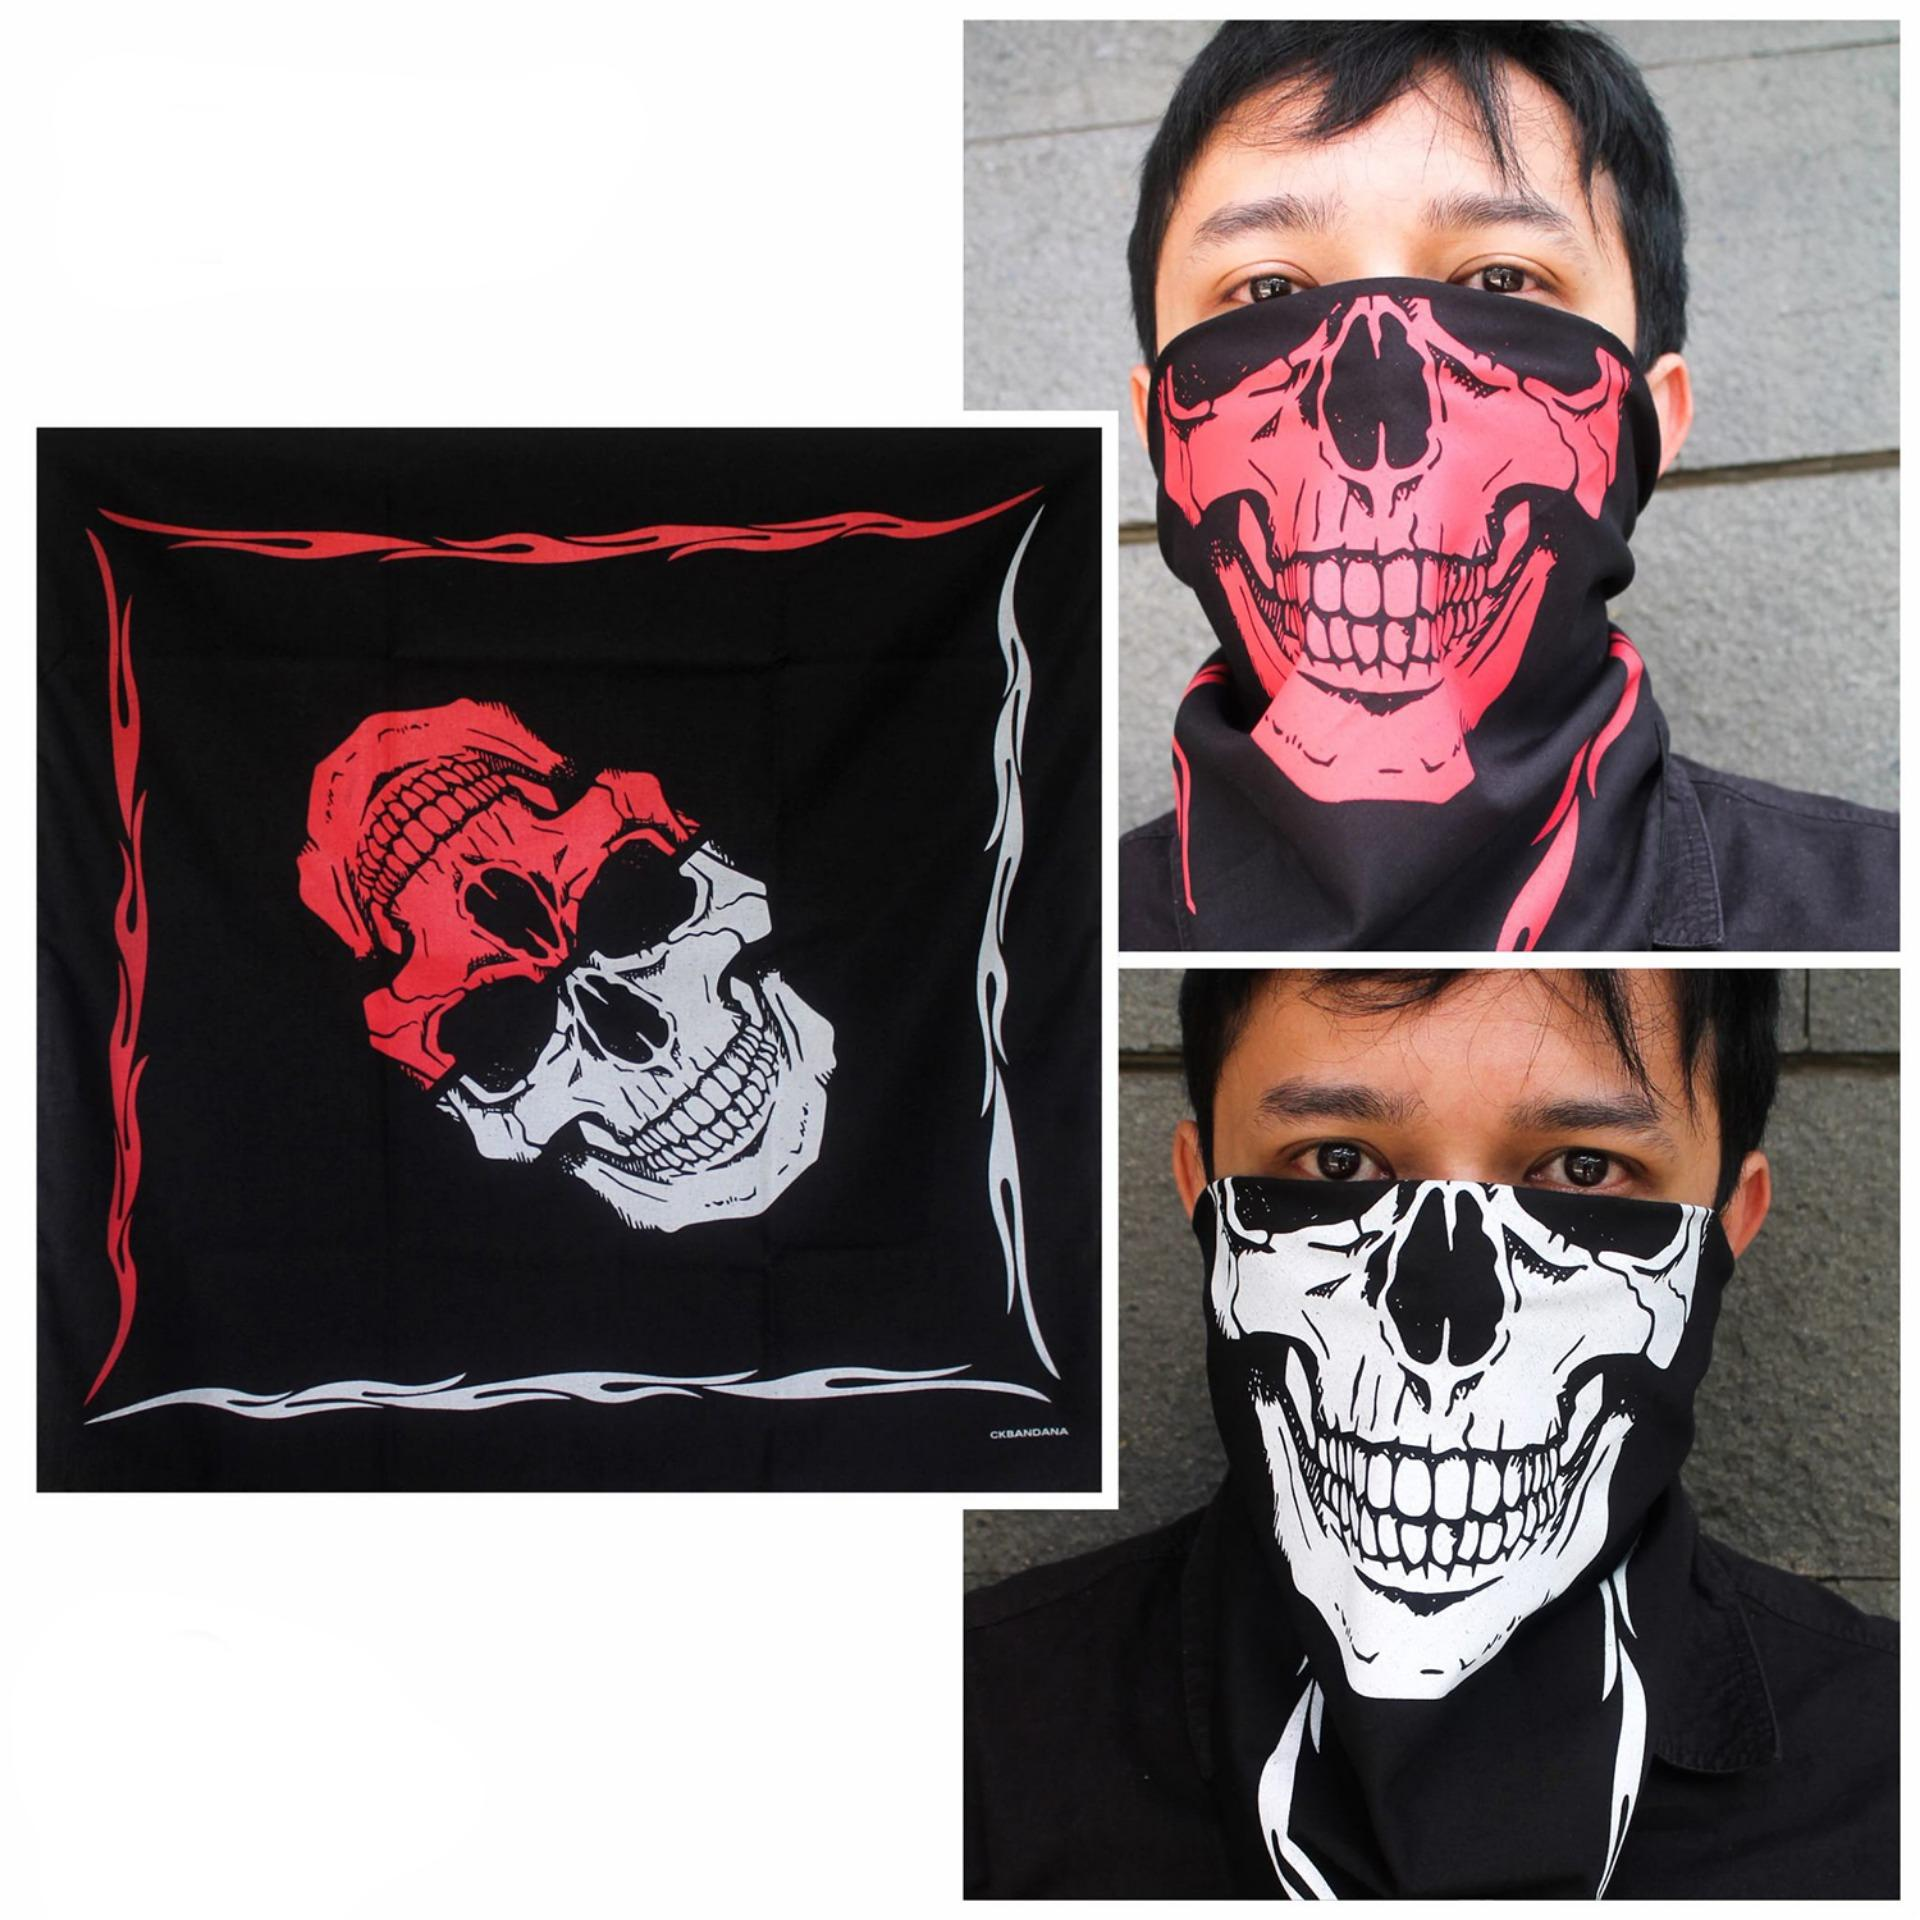 ... Ck Zakdoek Zd015 Bandana Motif Chiefs Skull Black Search Source CK Zakdoek ZD010 Bandana Motif